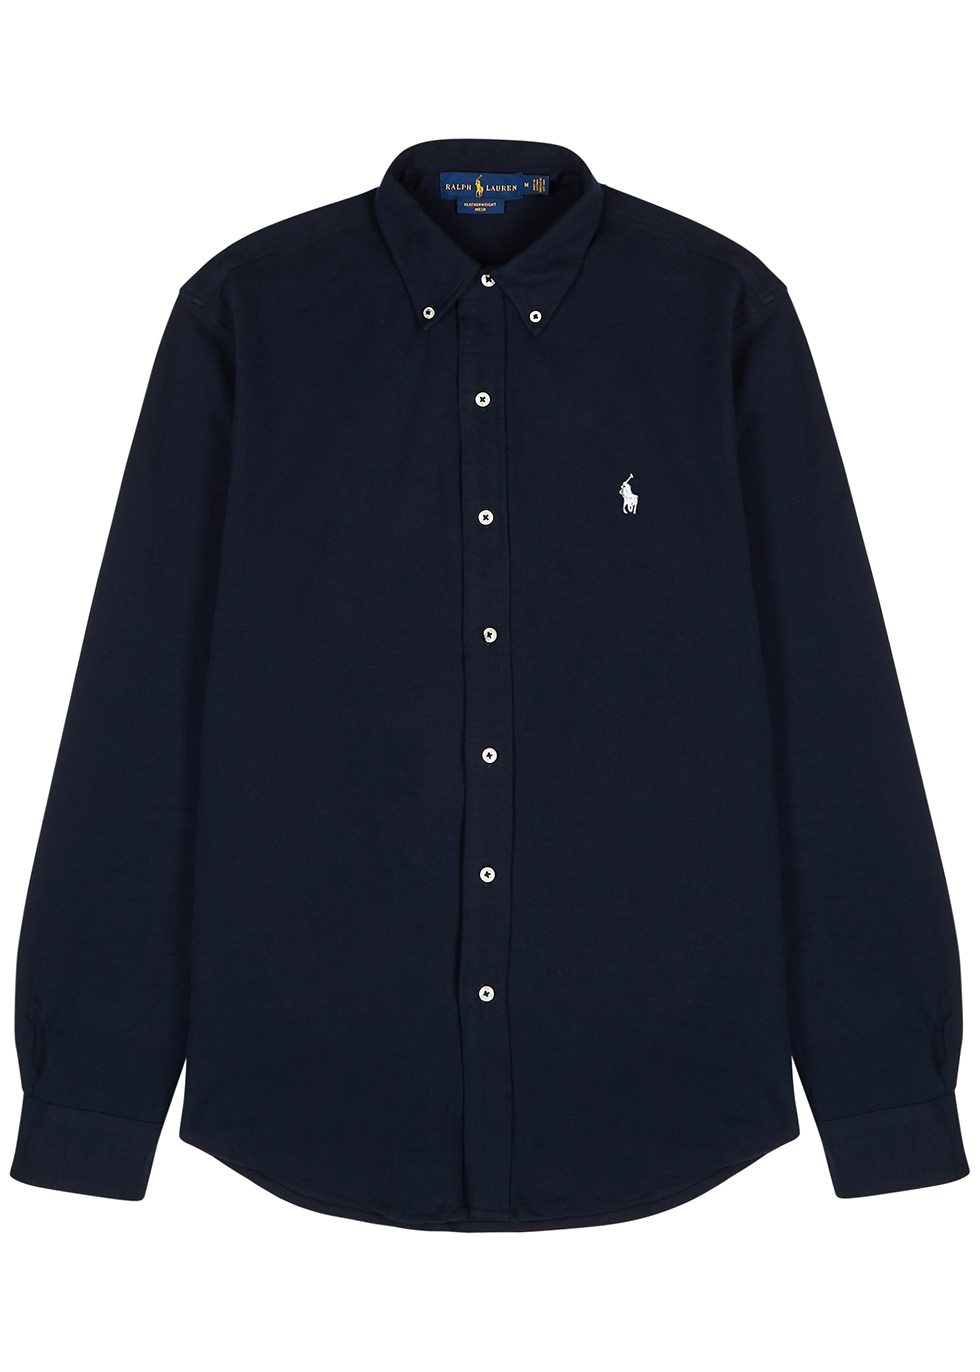 Navy piqué cotton shirt